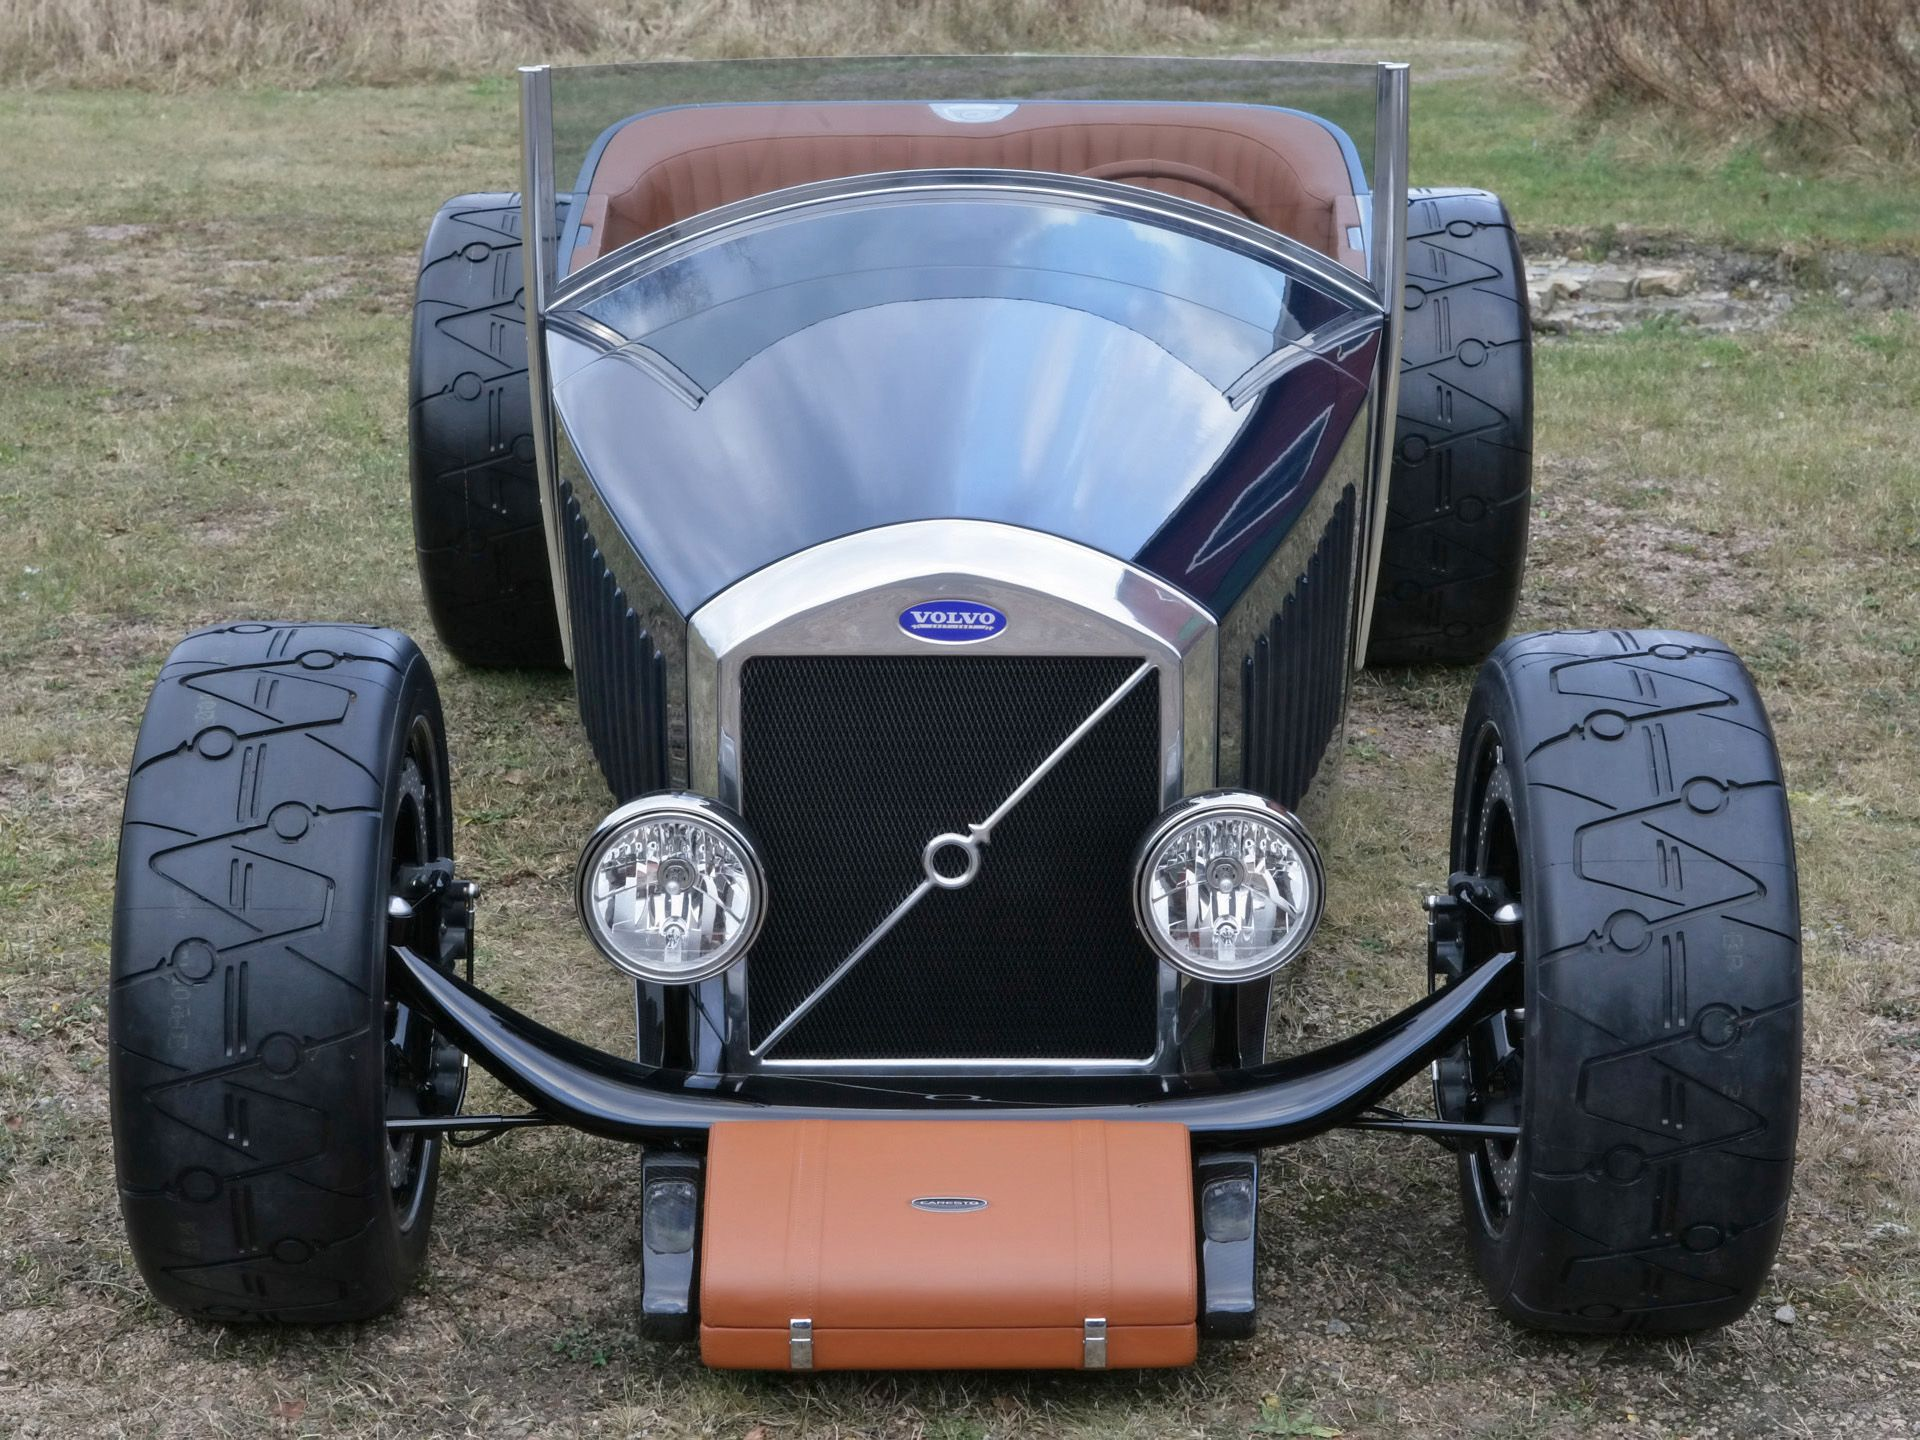 Who knew a Volvo could make such a great hot rod More of a retro